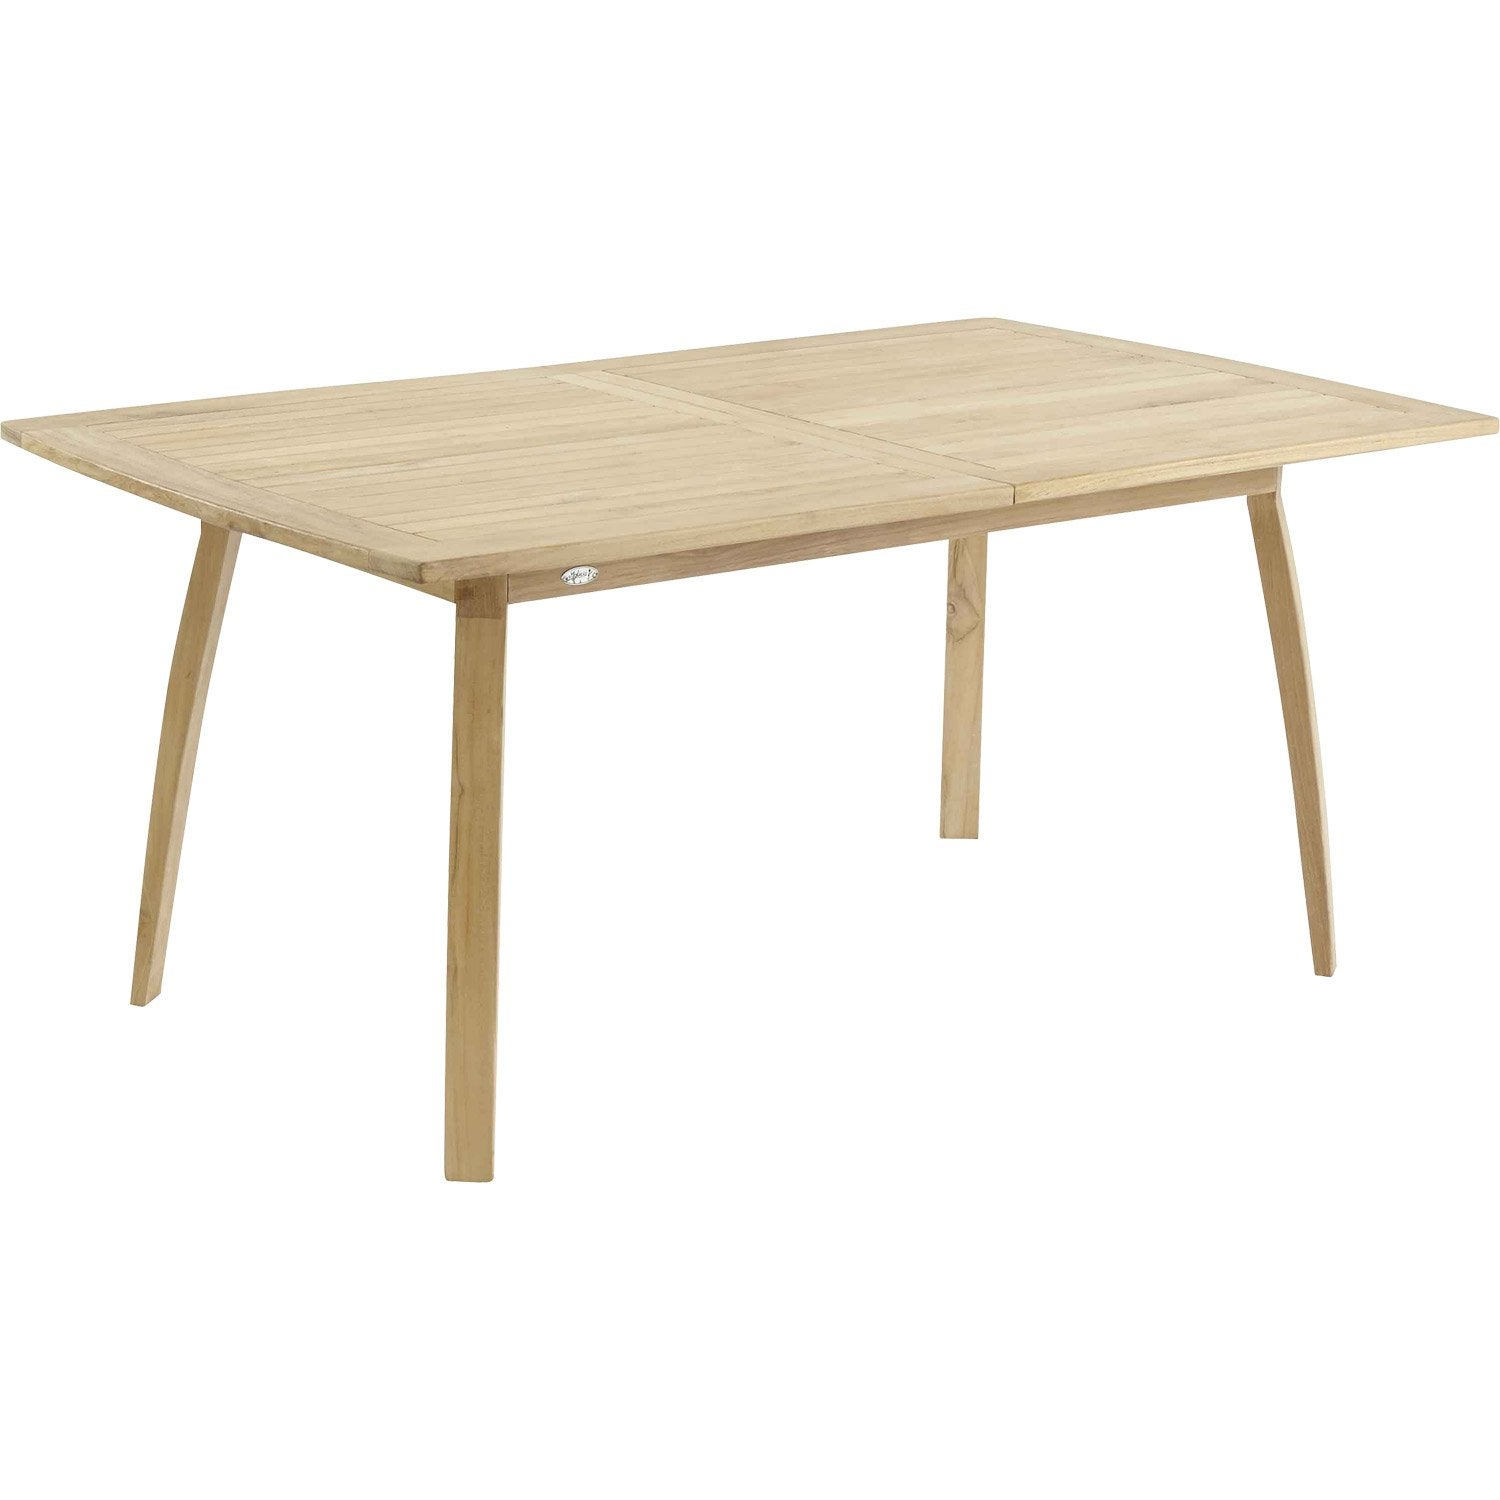 Table basse ovale leroy merlin for Table ovale 10 personnes